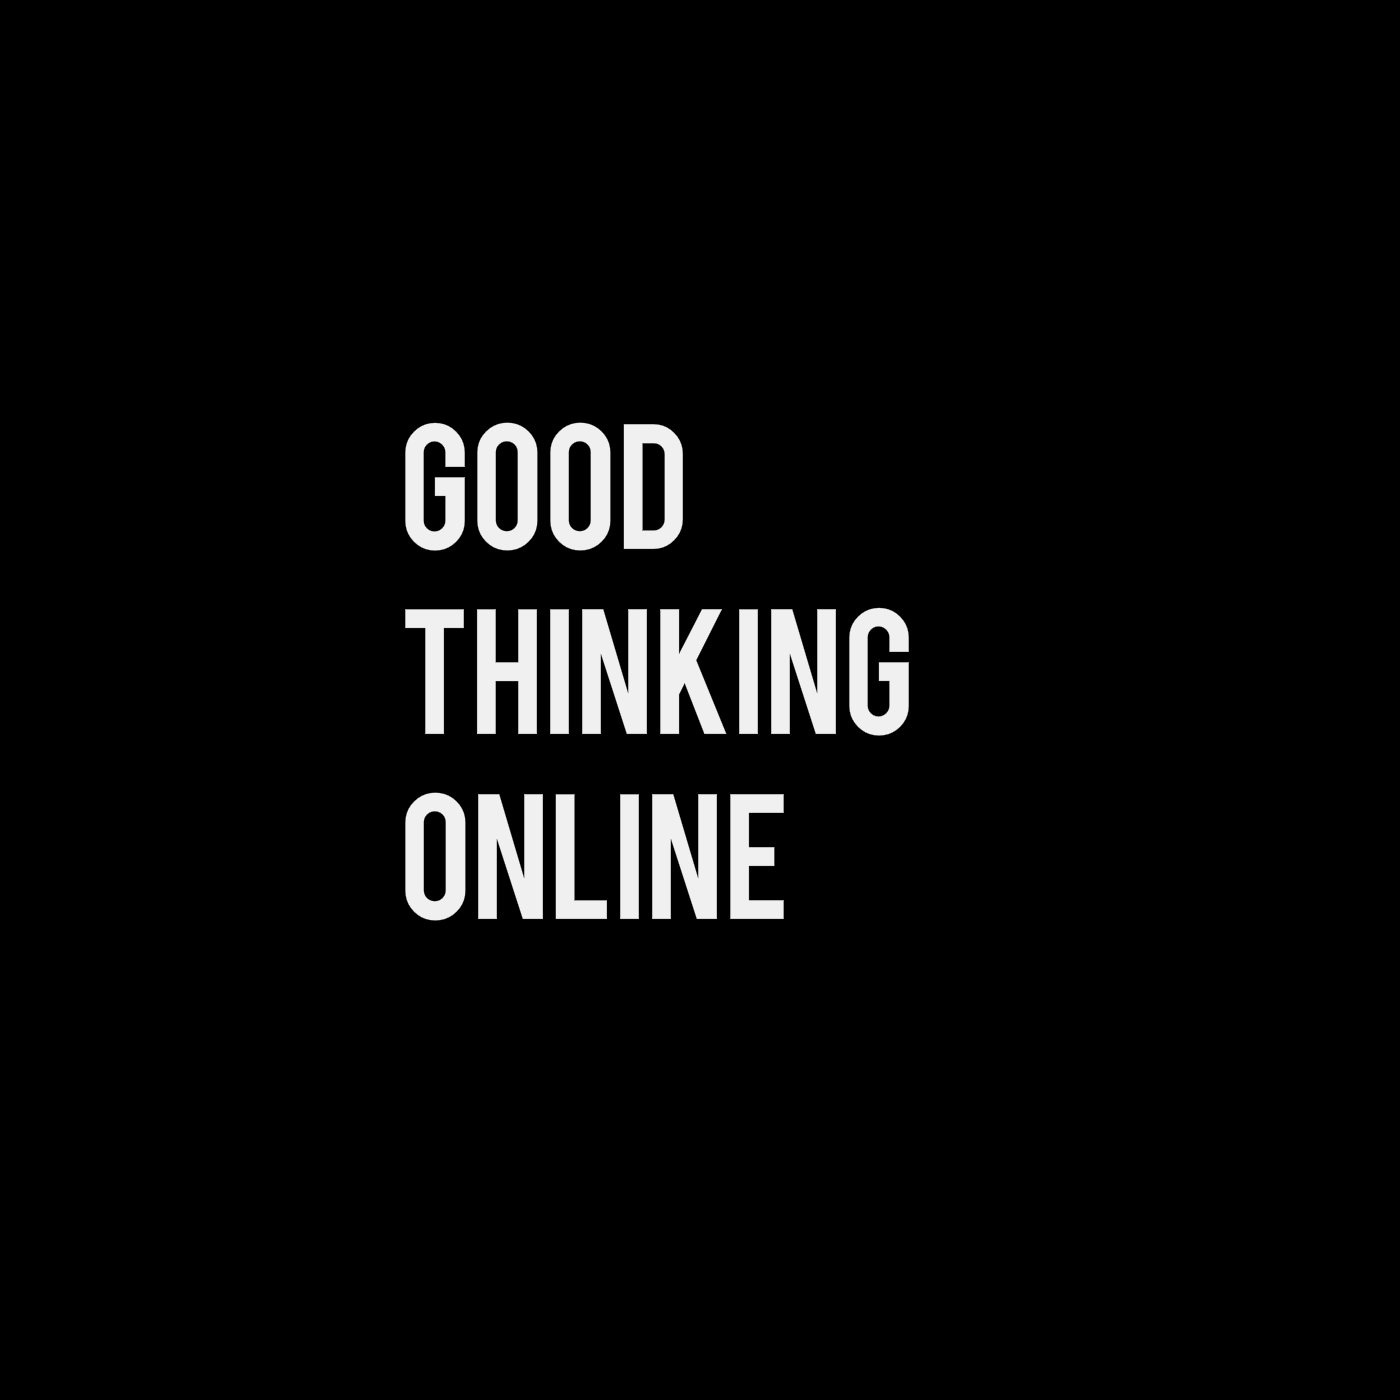 Good Thinking Online